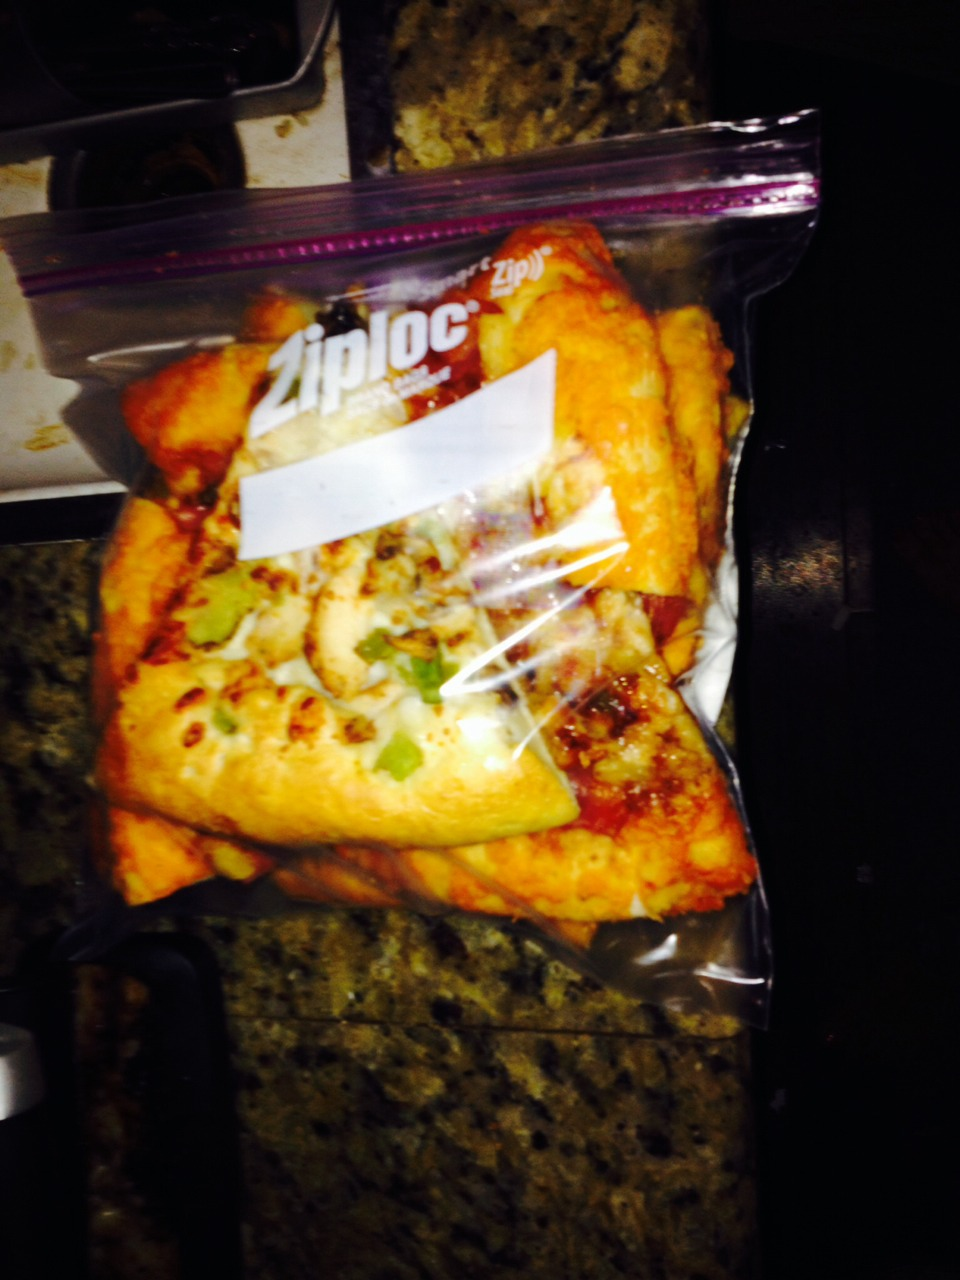 Ziplock the tower in a freezer size bag and write the date on it. Good way to save space and determine whether you should reheat that old pizza or throw it out!